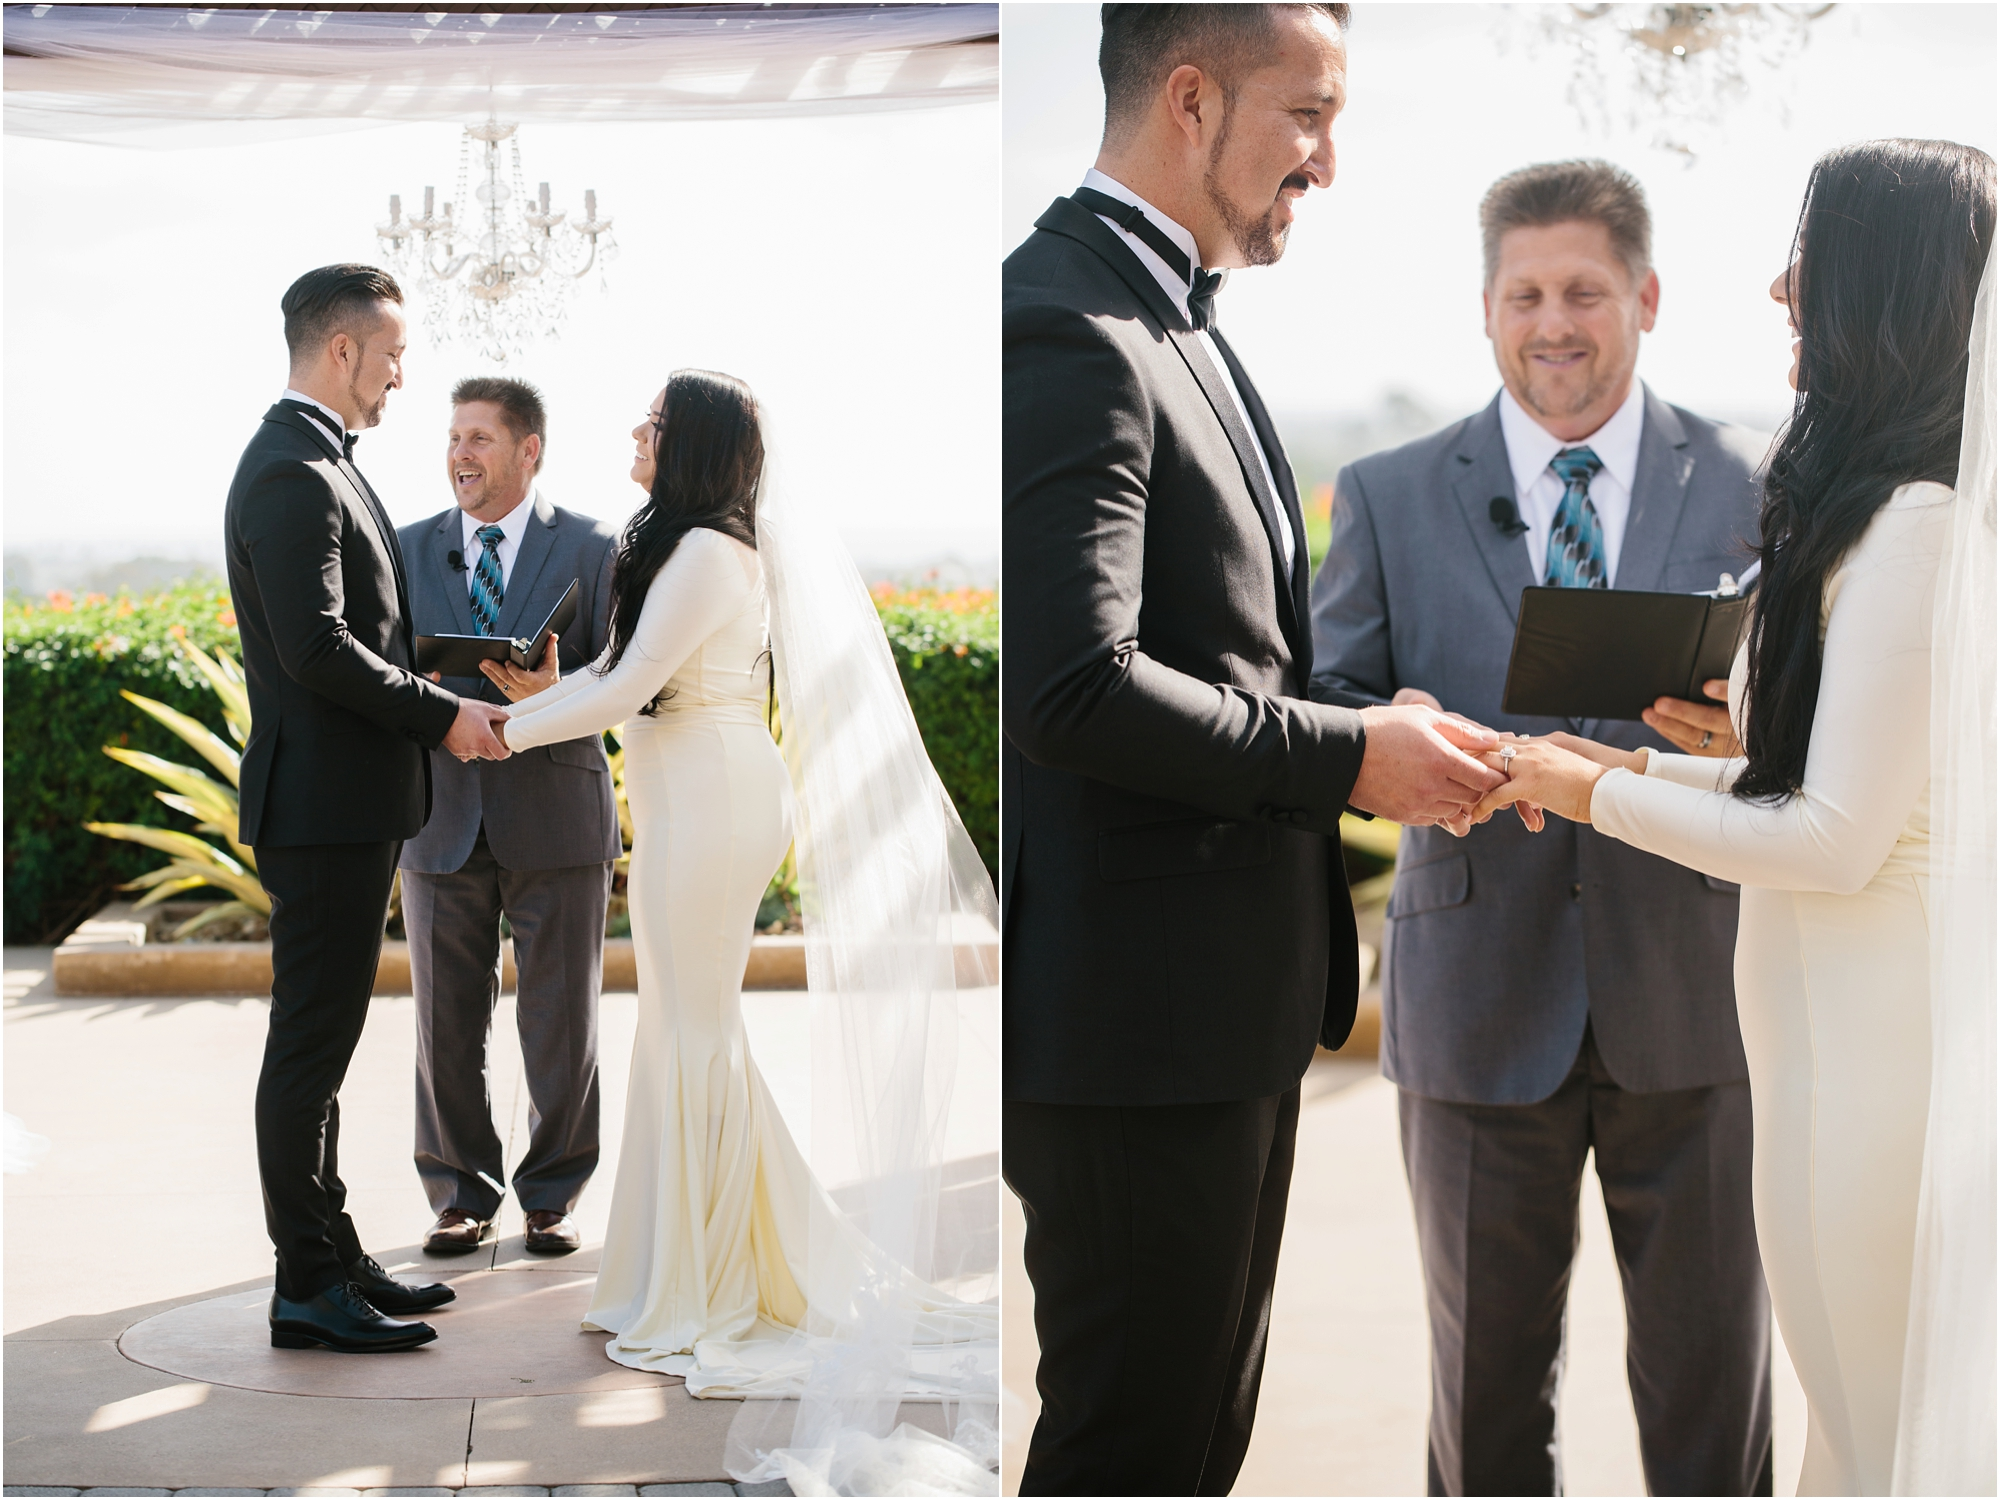 Grand Pacific Palisades Resort Wedding - http://brittneyhannonphotography.com